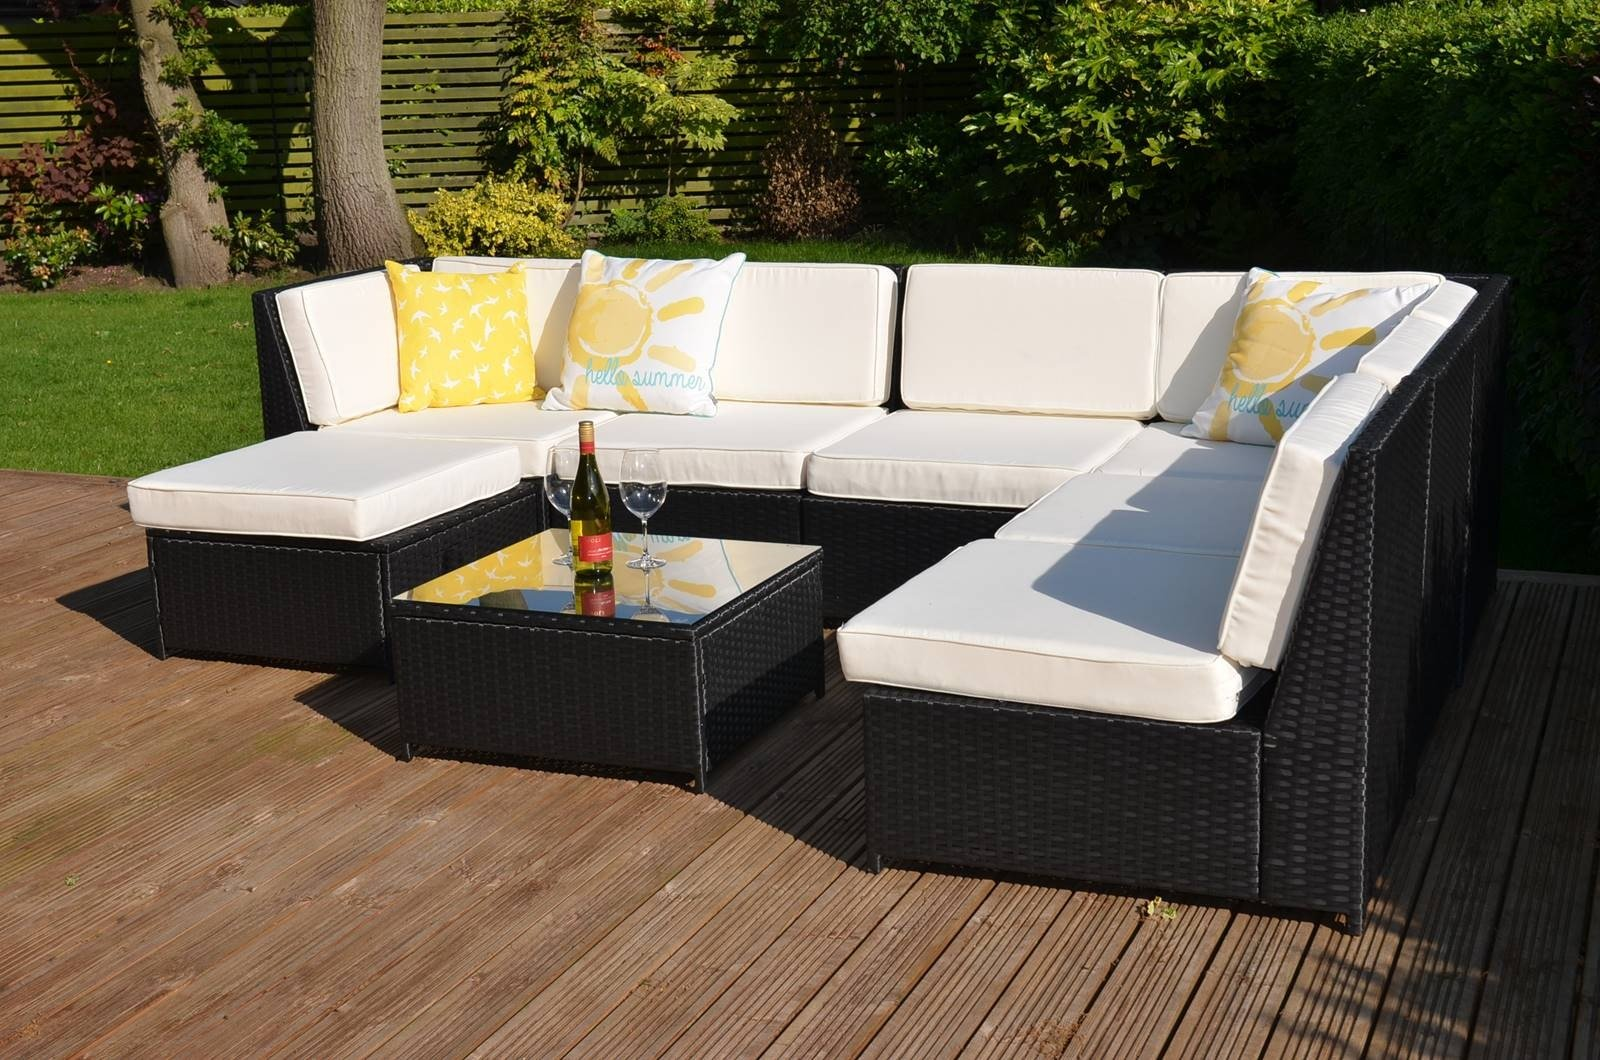 Lamanga 7 Seater Garden Rattan Corner Sofa Set With Table Grey